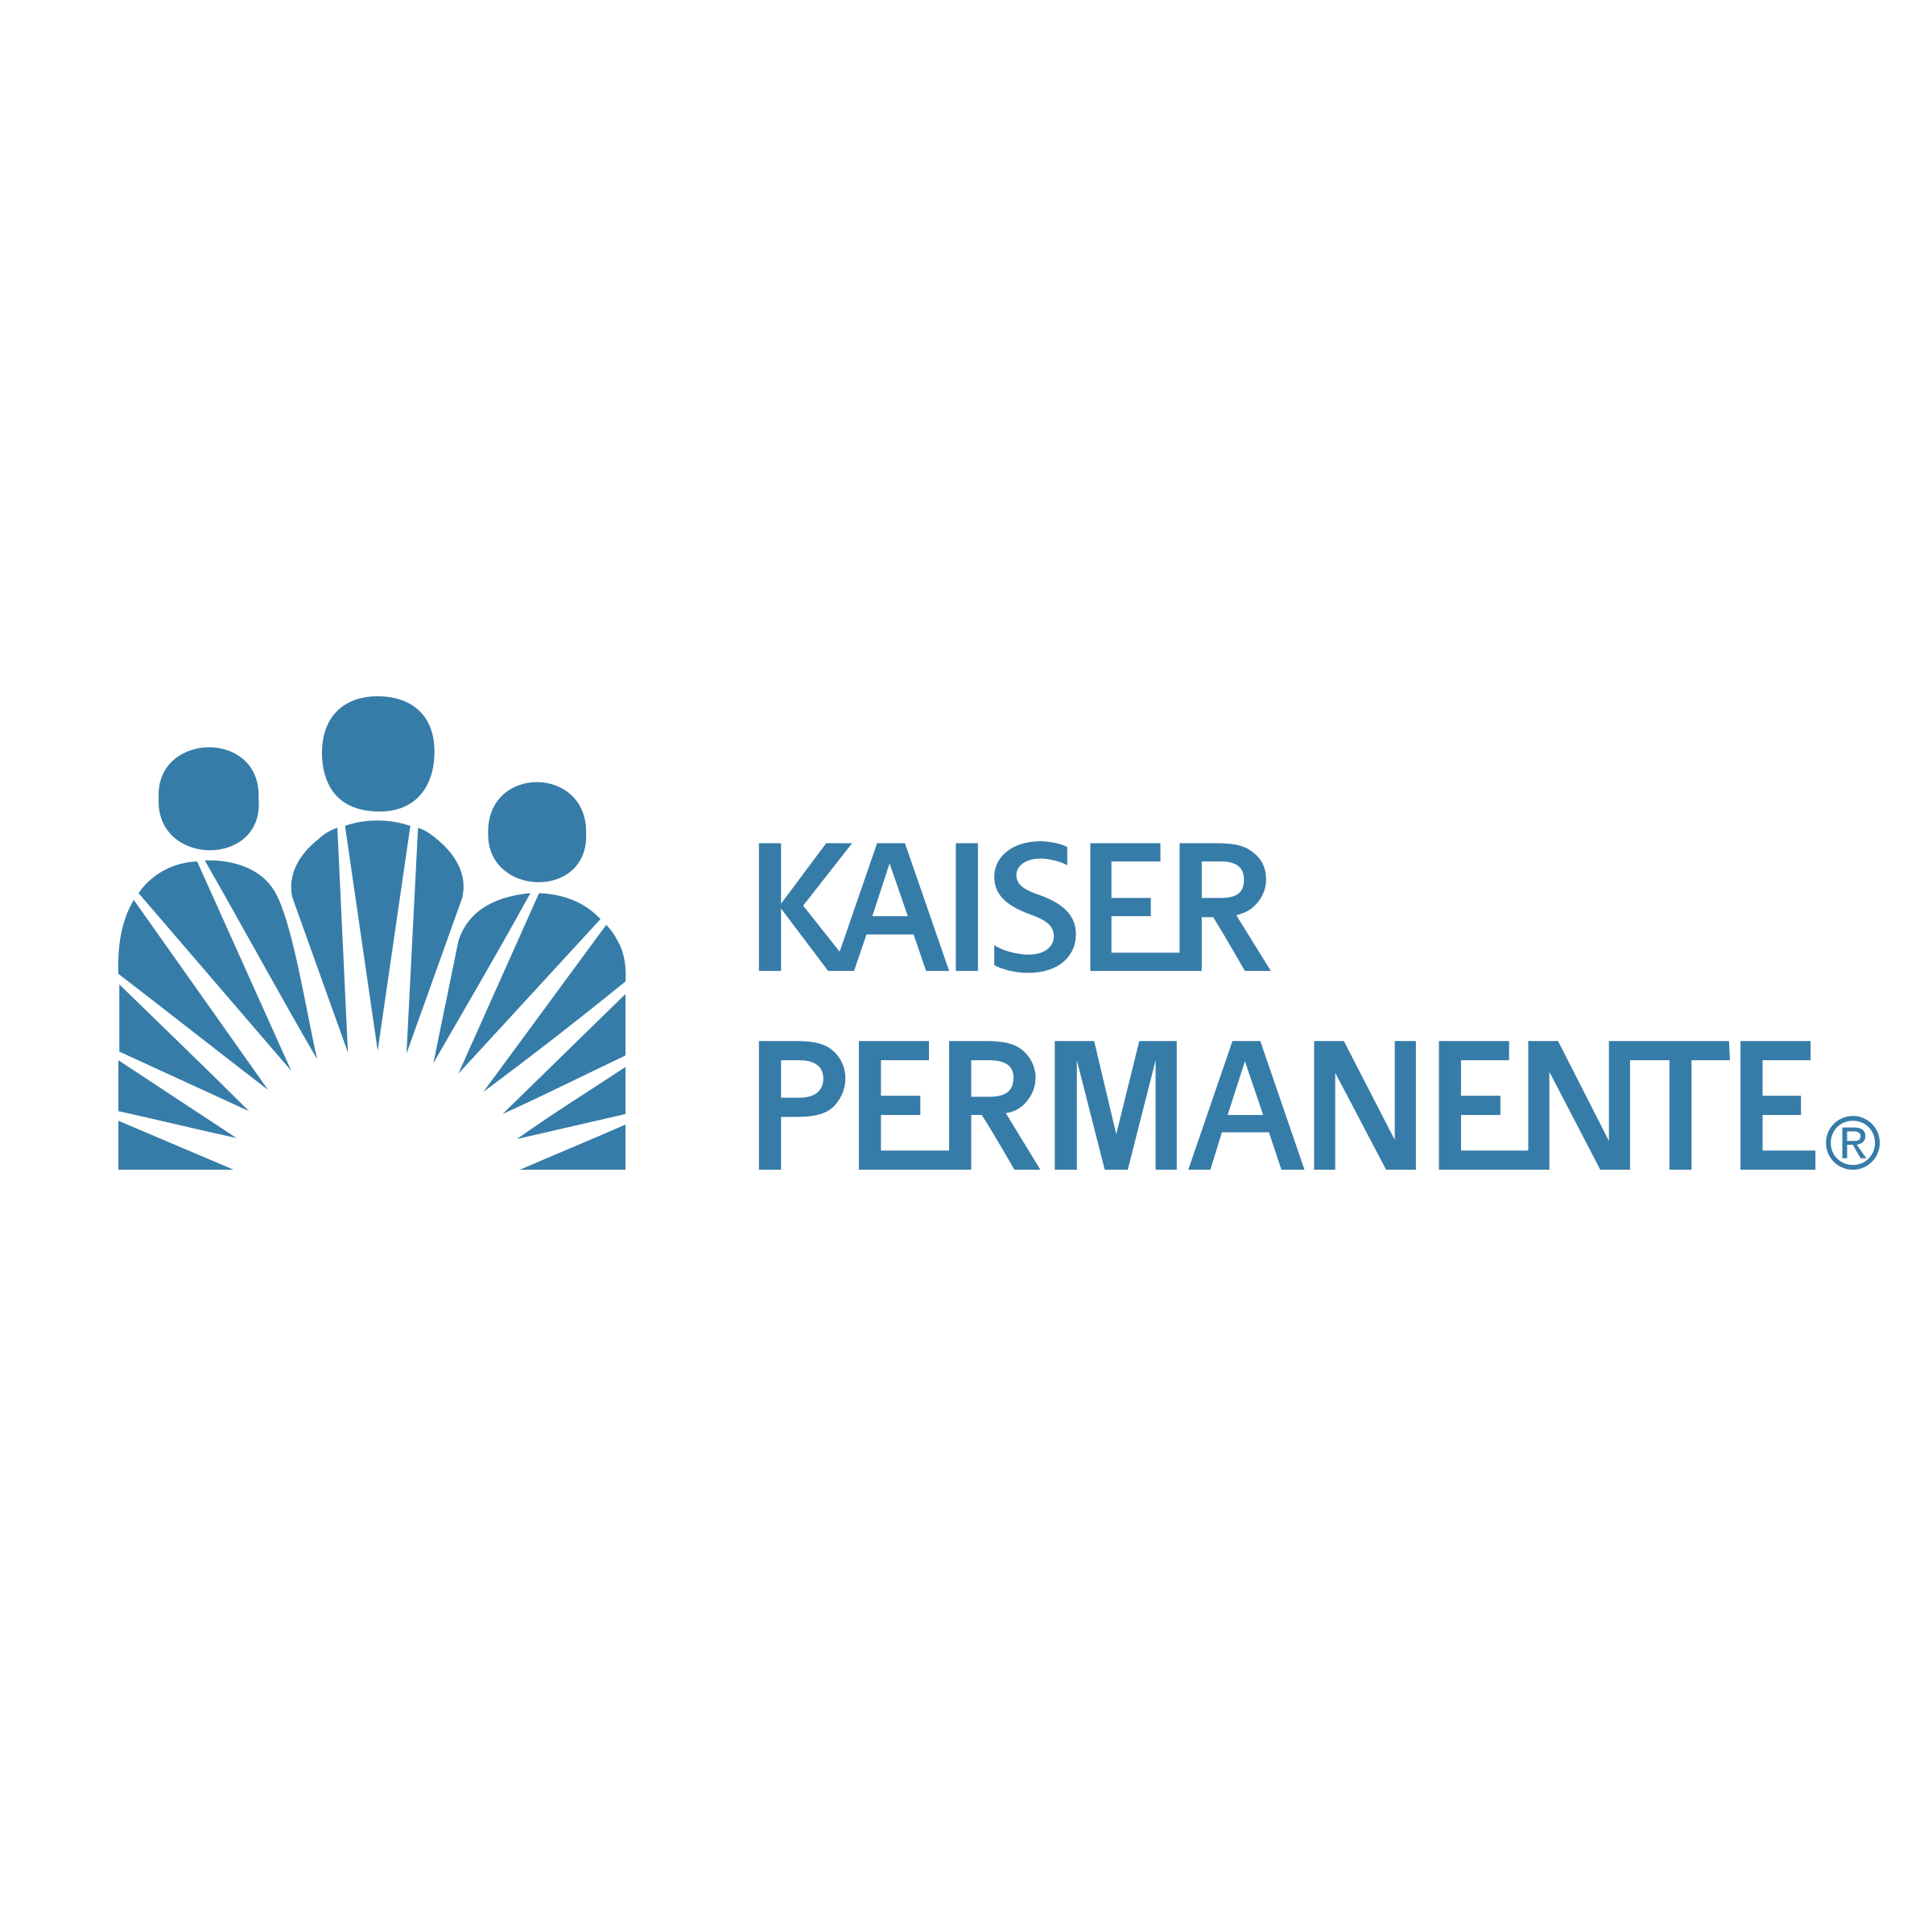 kaiser permanente logo png transparent amp svg vector